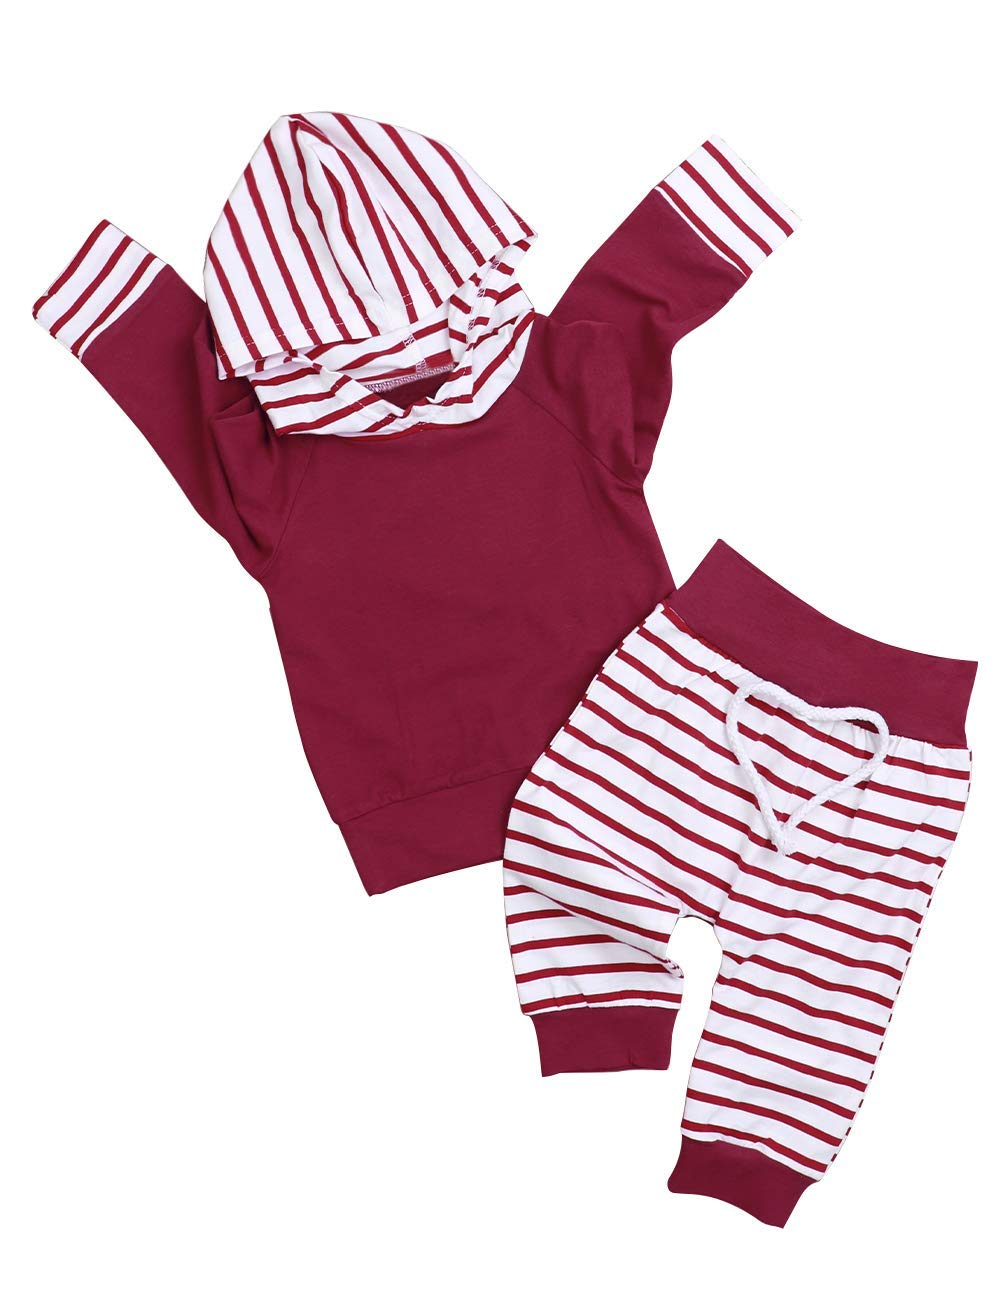 Baby Girl Clothes Long Sleeved Hoodie Sweatshirt and Striped Pants 2Pcs Outfit Sets(12-18months) Red